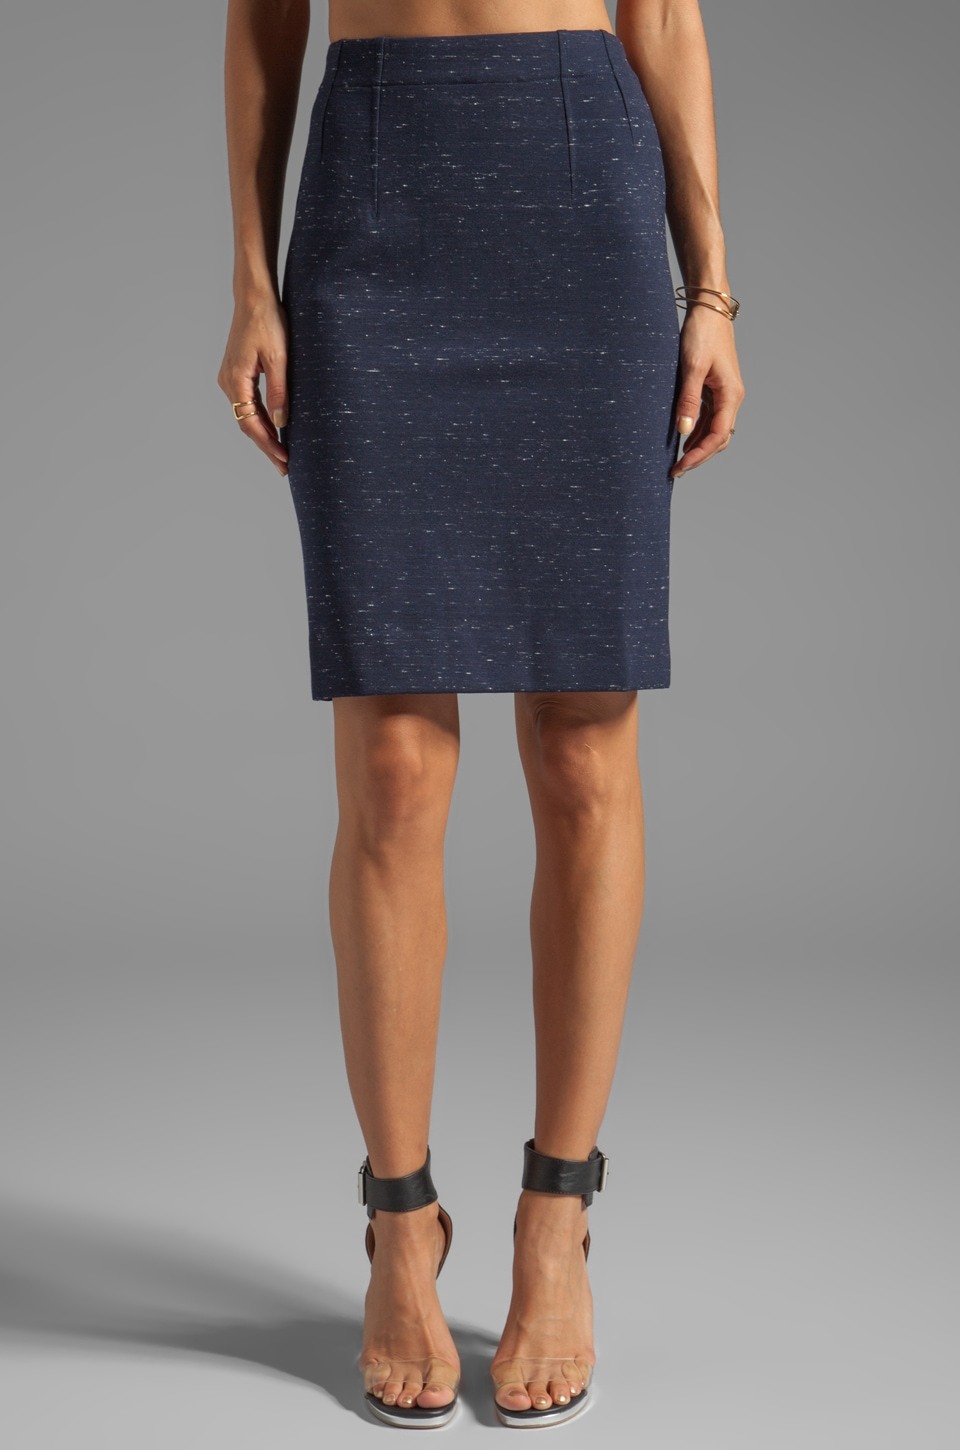 Marc by Marc Jacobs Alicia Ponte Skirt in Ink Blue Melange